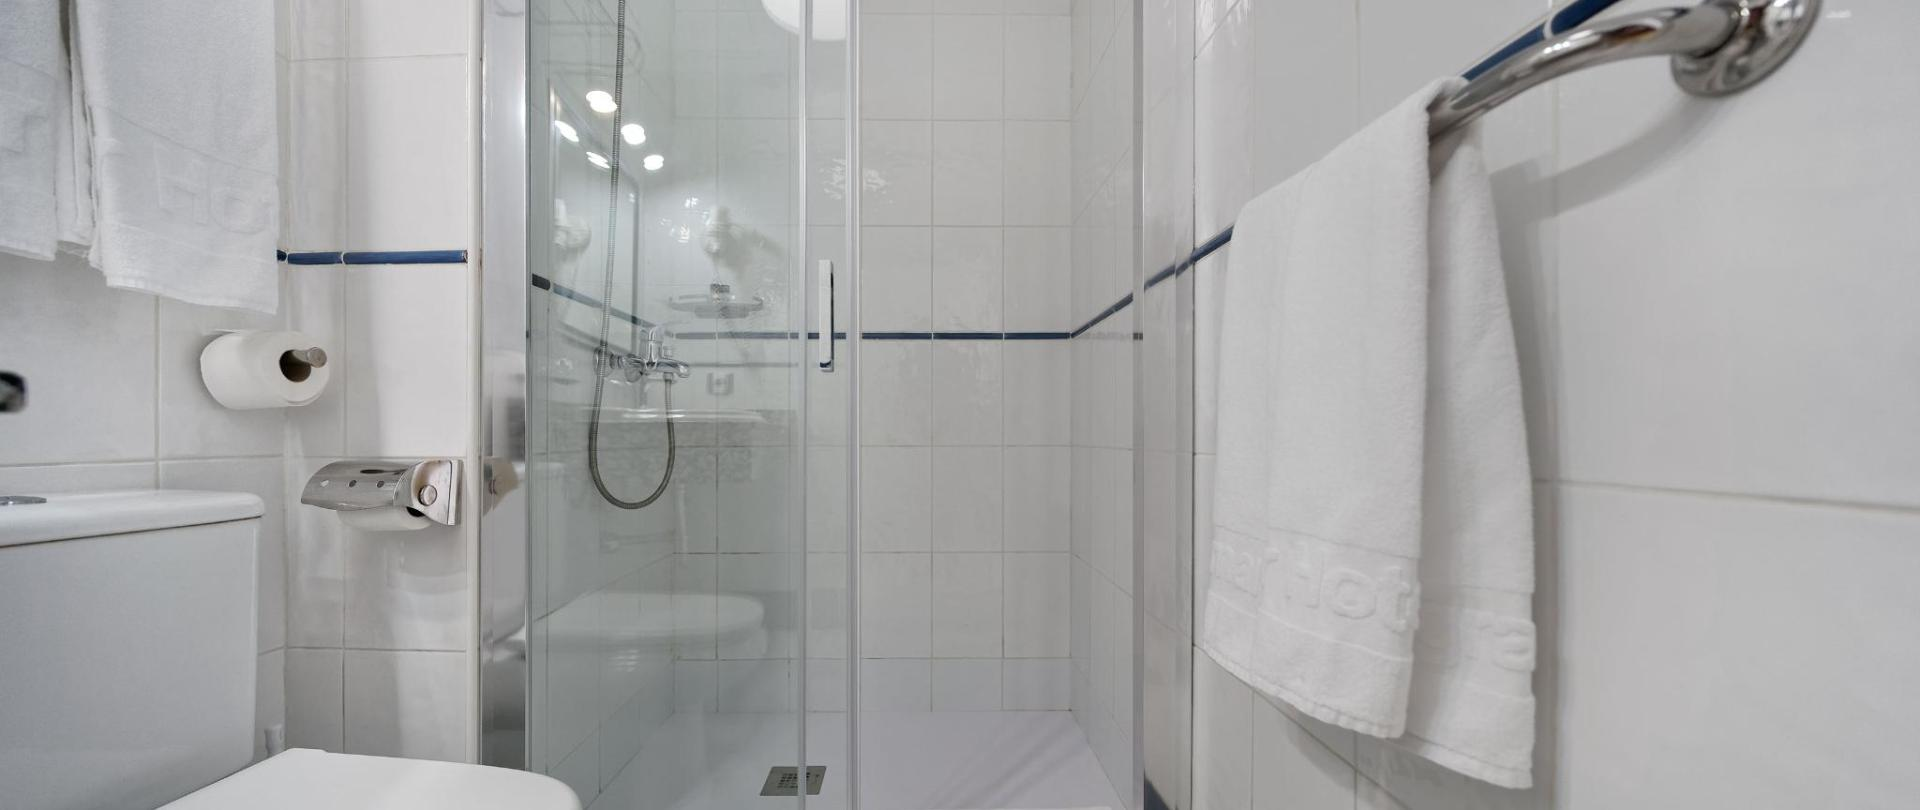 Bathroom Shower Igramar Morro Jable